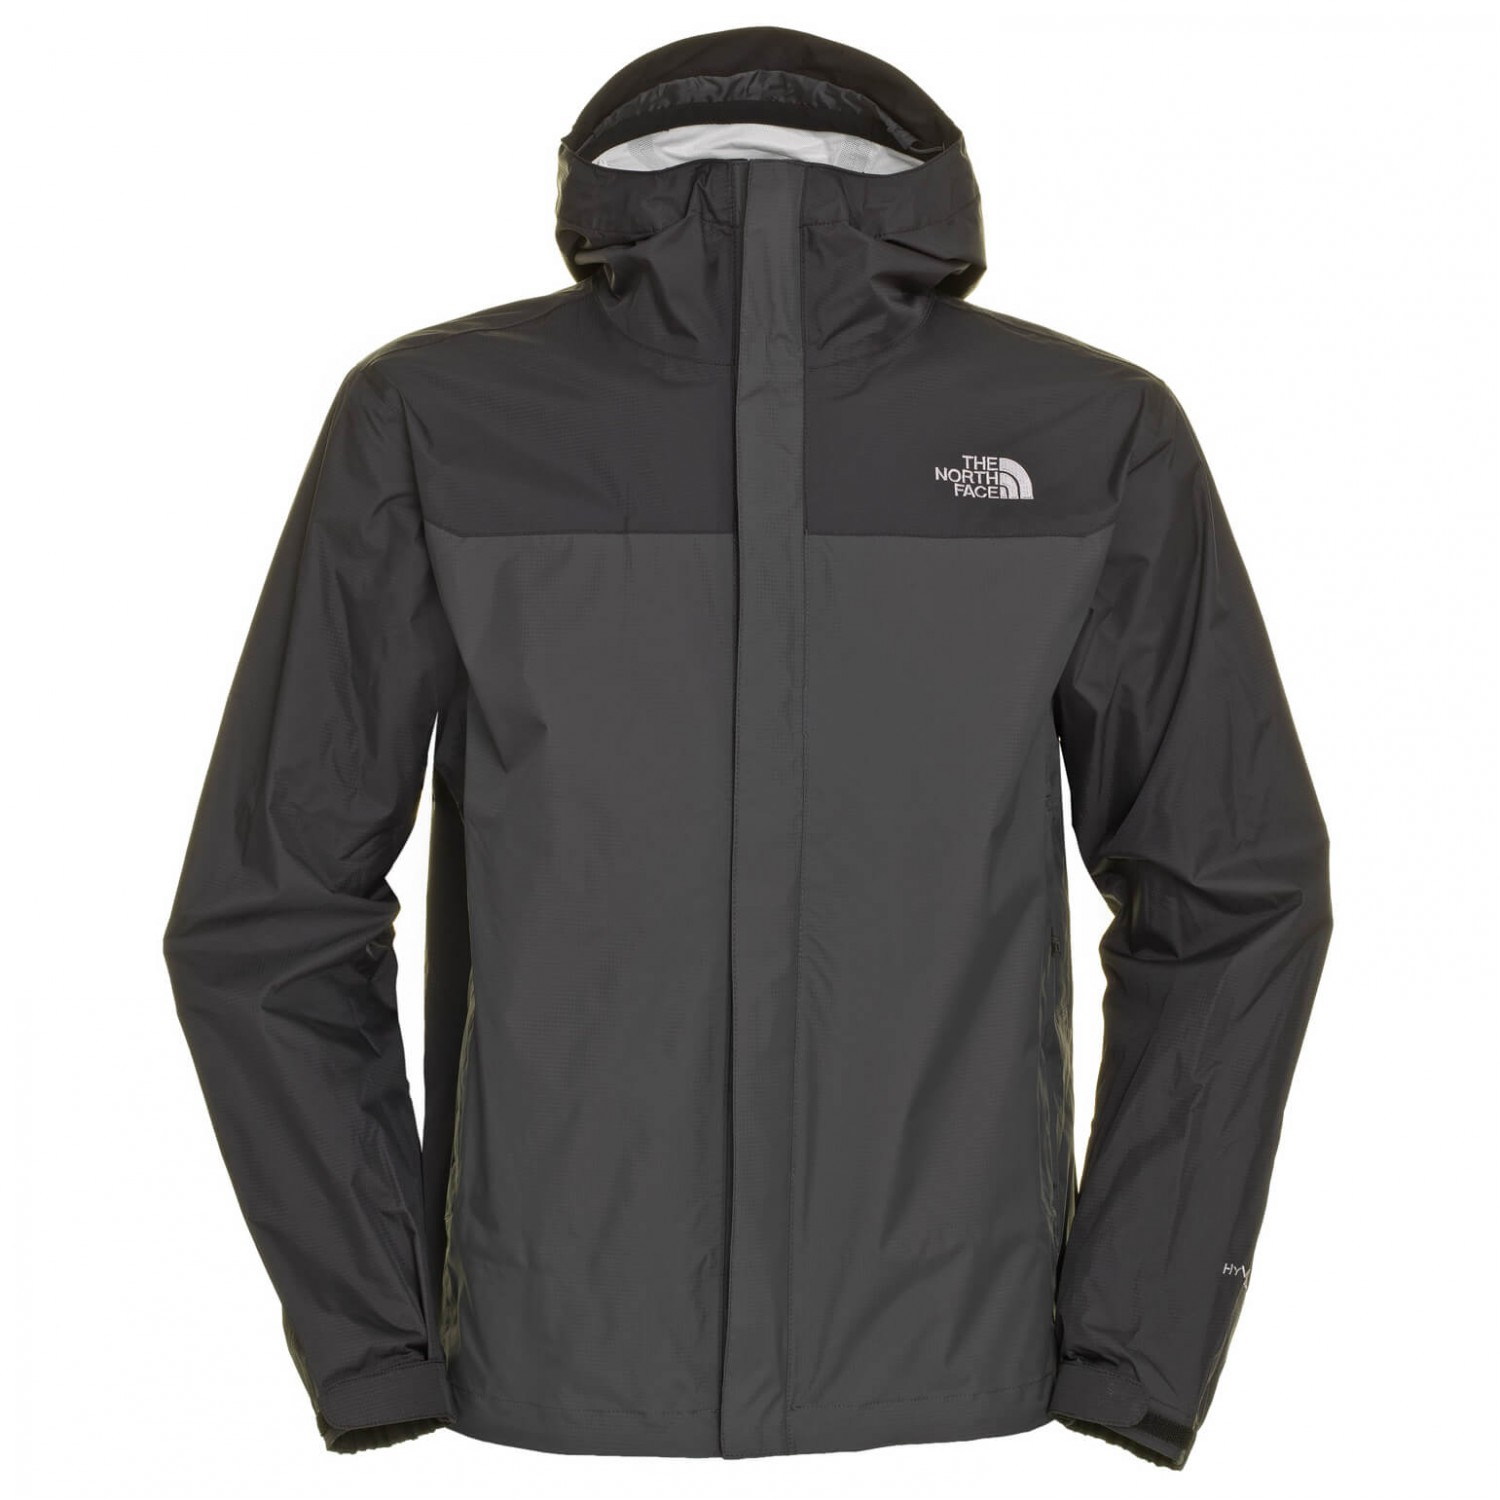 the north face herren regenjacke quest tnf black l 0617932968089 neo. Black Bedroom Furniture Sets. Home Design Ideas